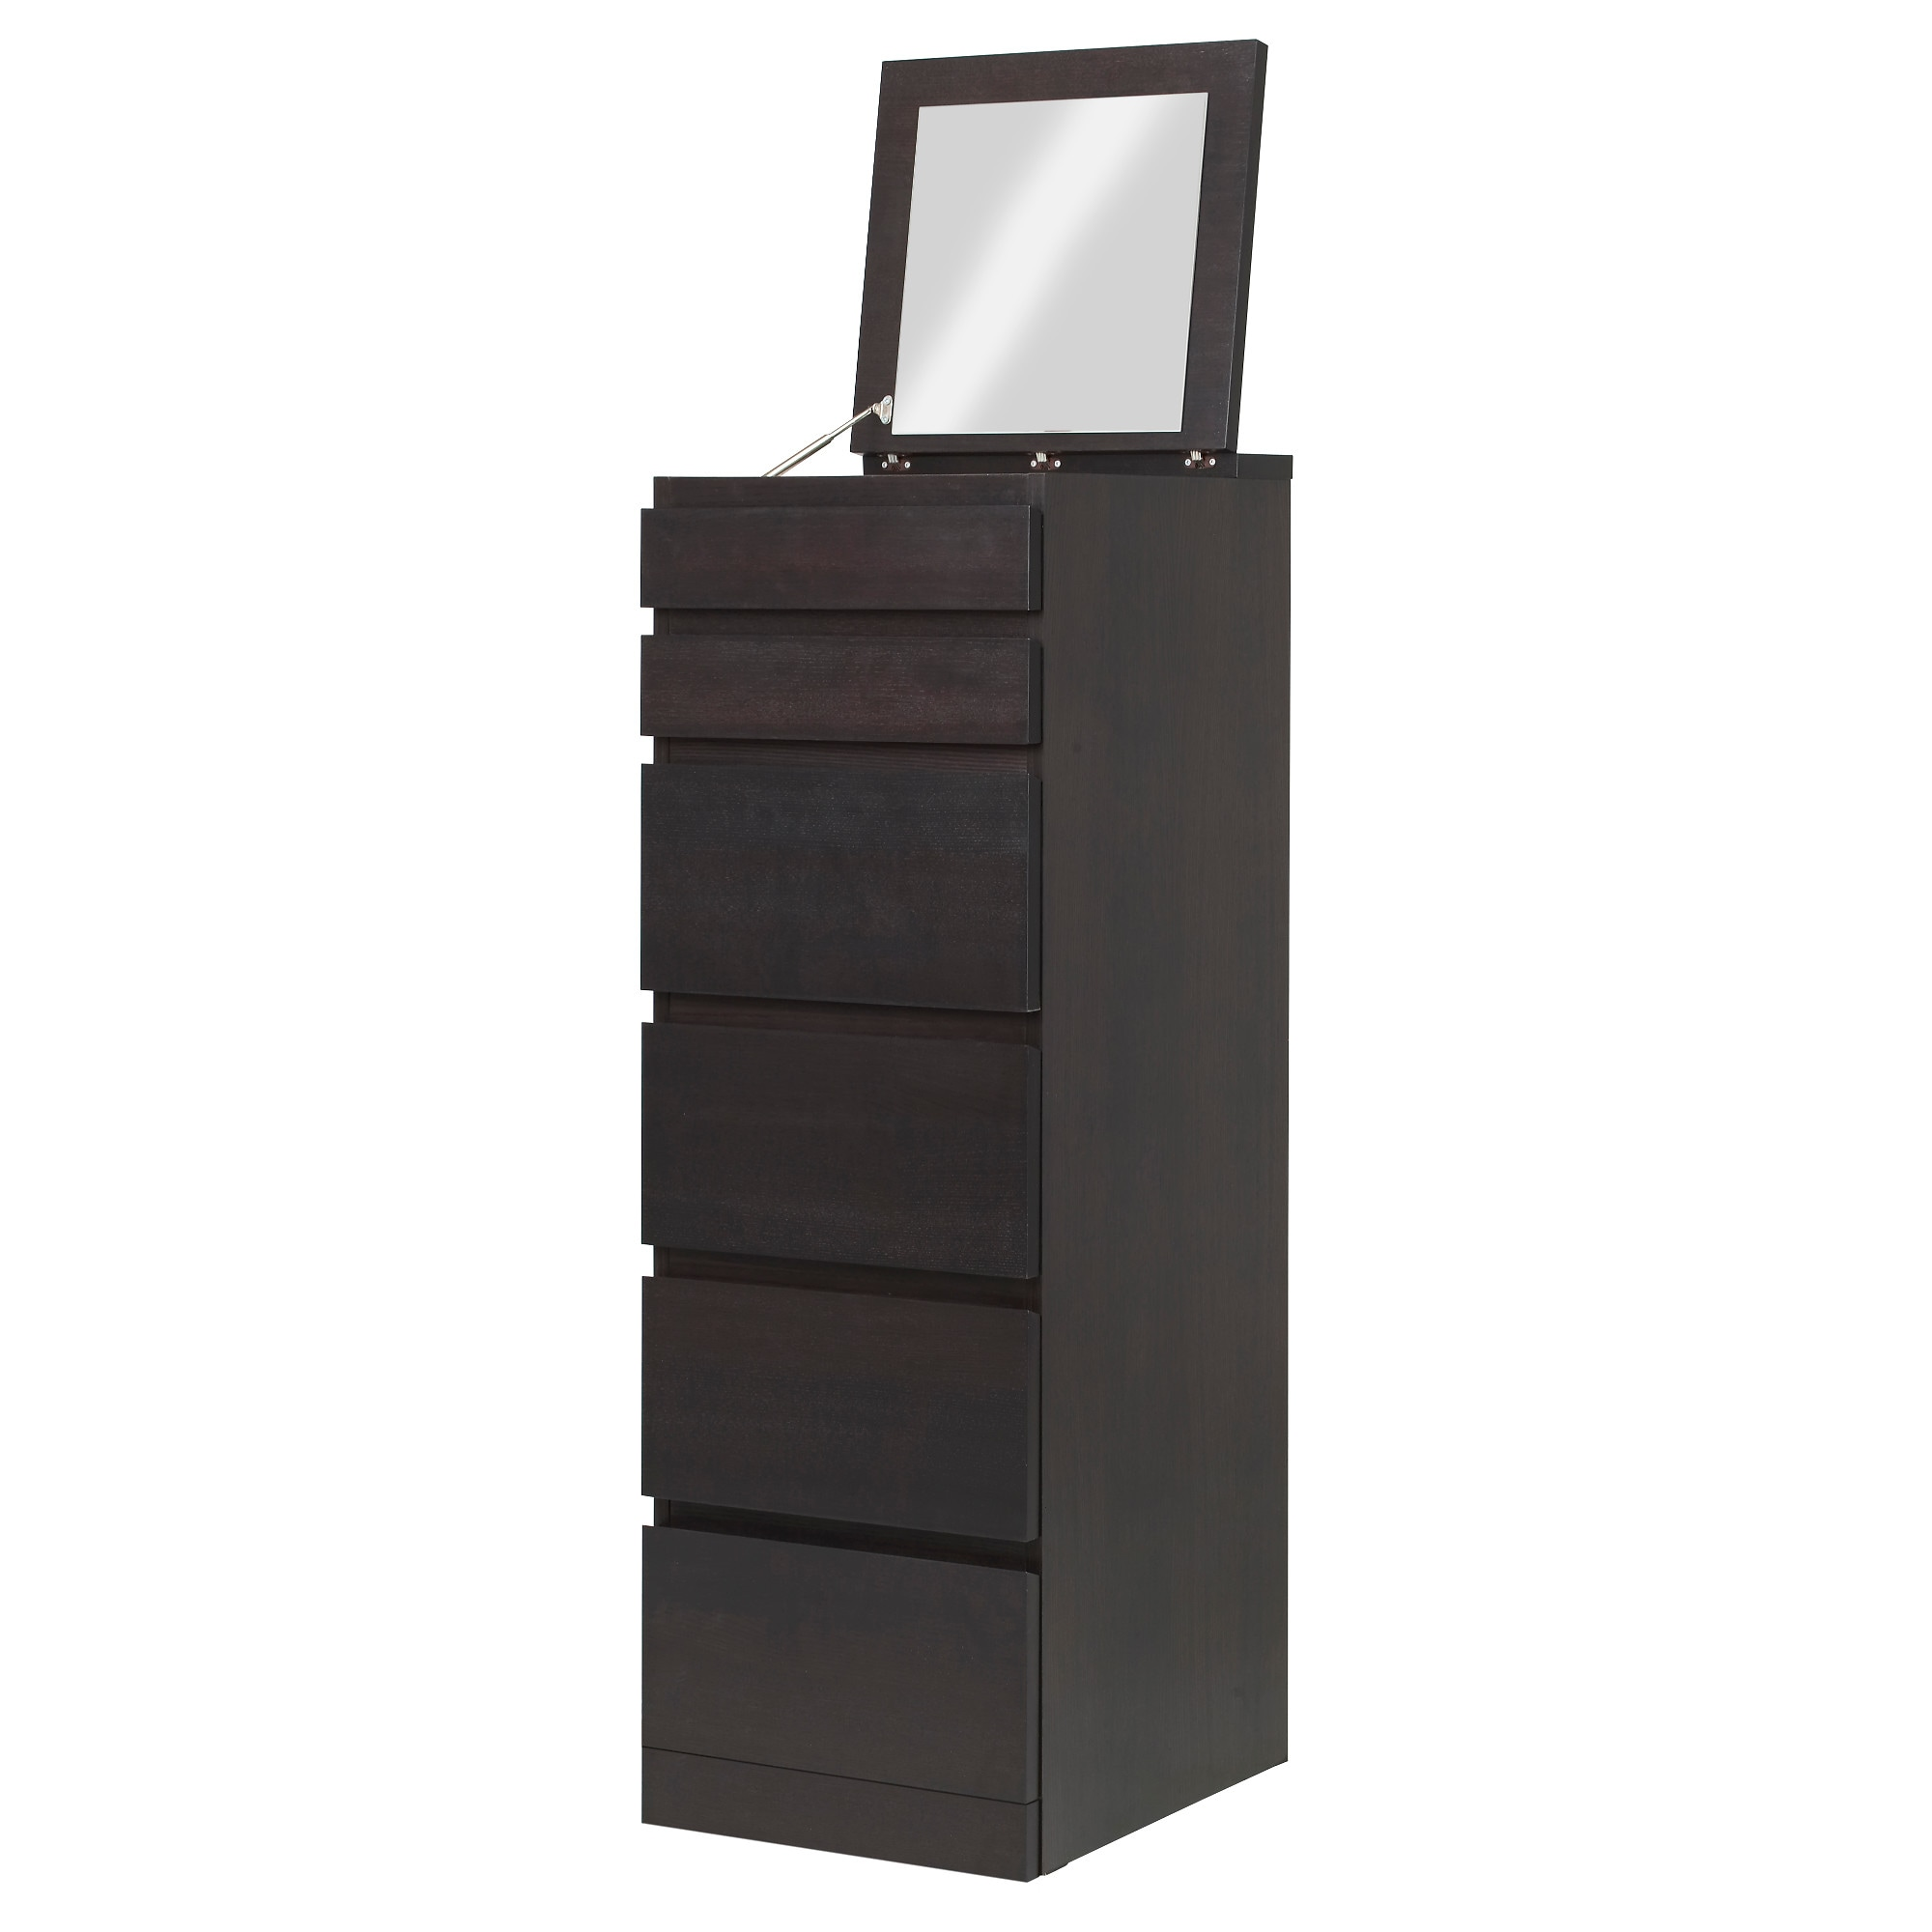 MALM 6-drawer chest, black-brown, mirror glass Width: 15 3